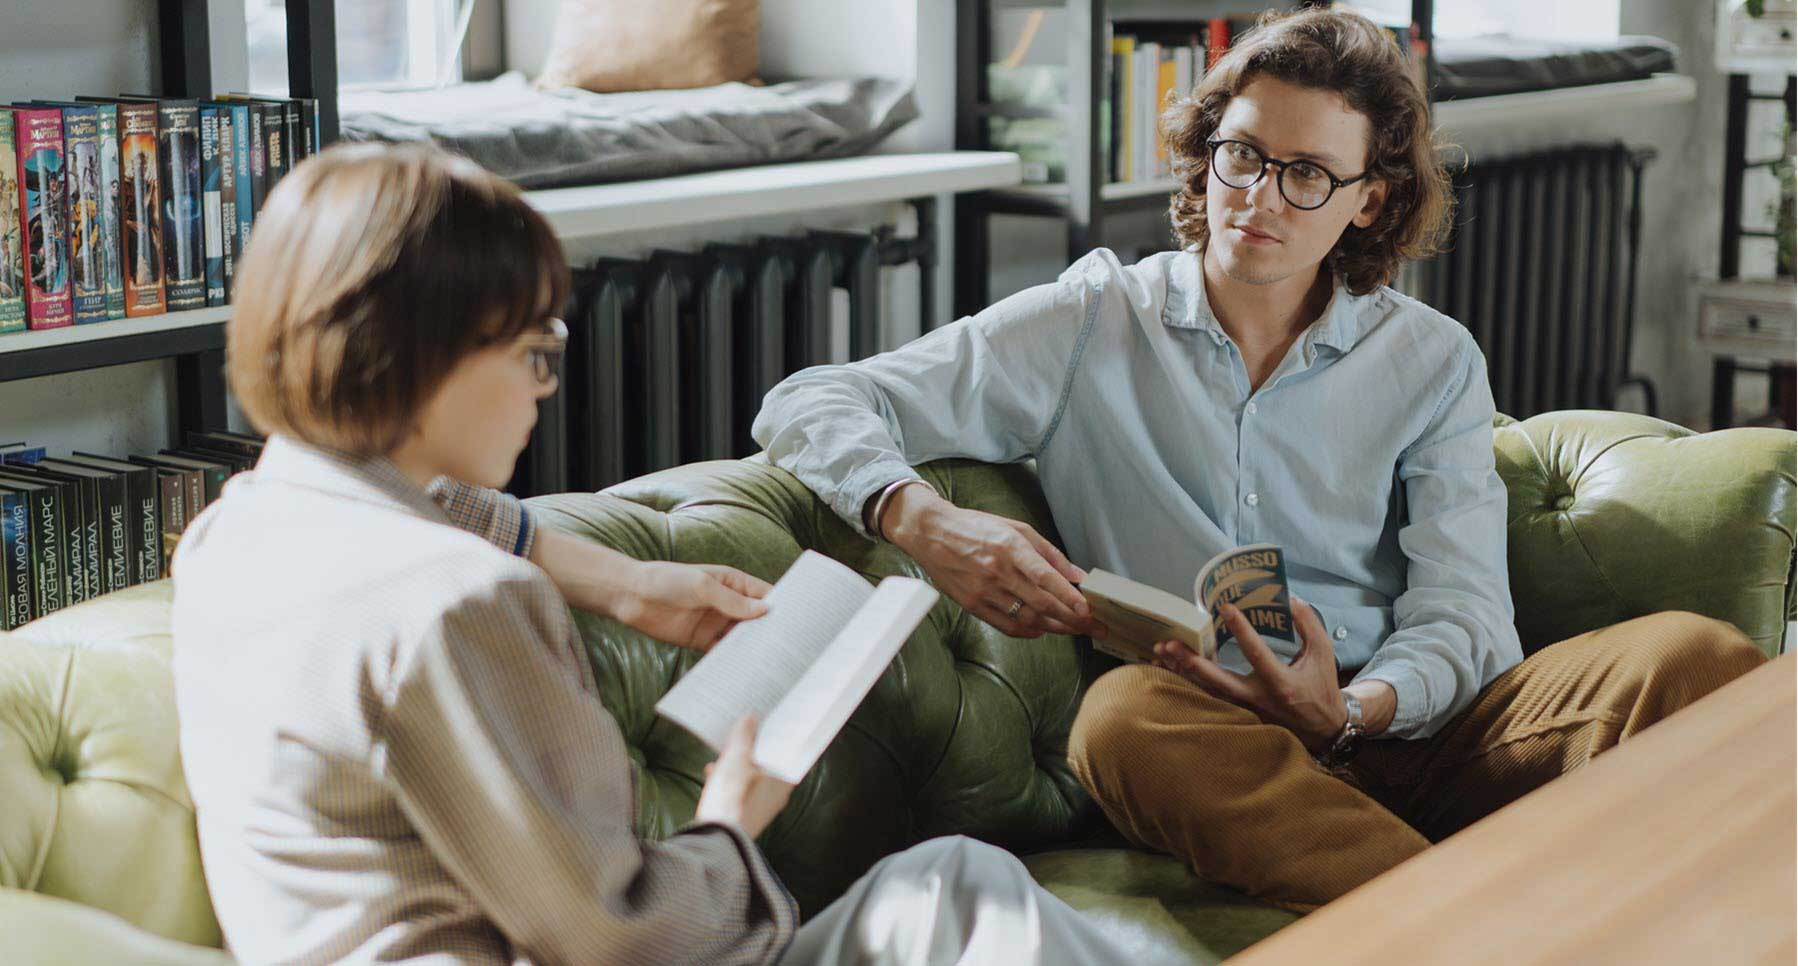 does-she-like-me-girl-and-guy-in-a-bookstore-on-a-couch-Dating-Advice-for-Guys-How-to-Know-if-a-Girl-Likes-You-TheHopeLine